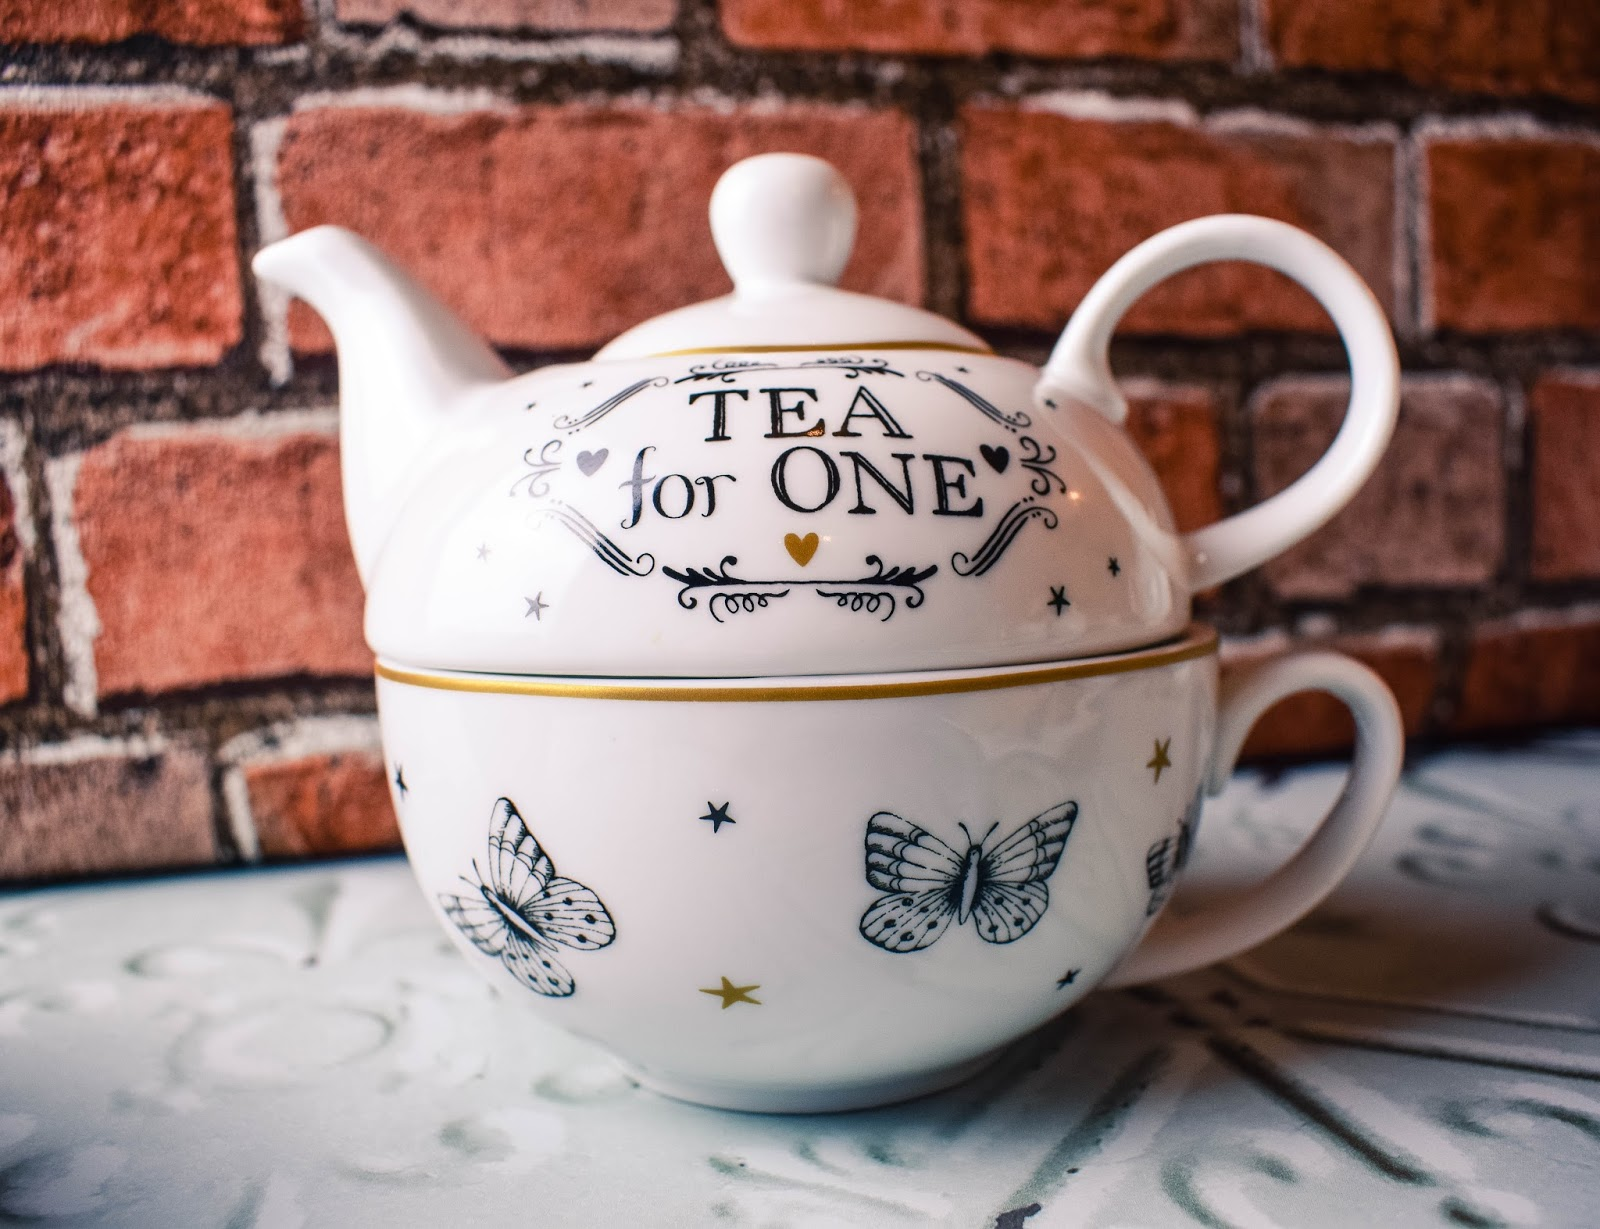 lebellelavie - It's all about a nice cuppa tea with Asda homeware